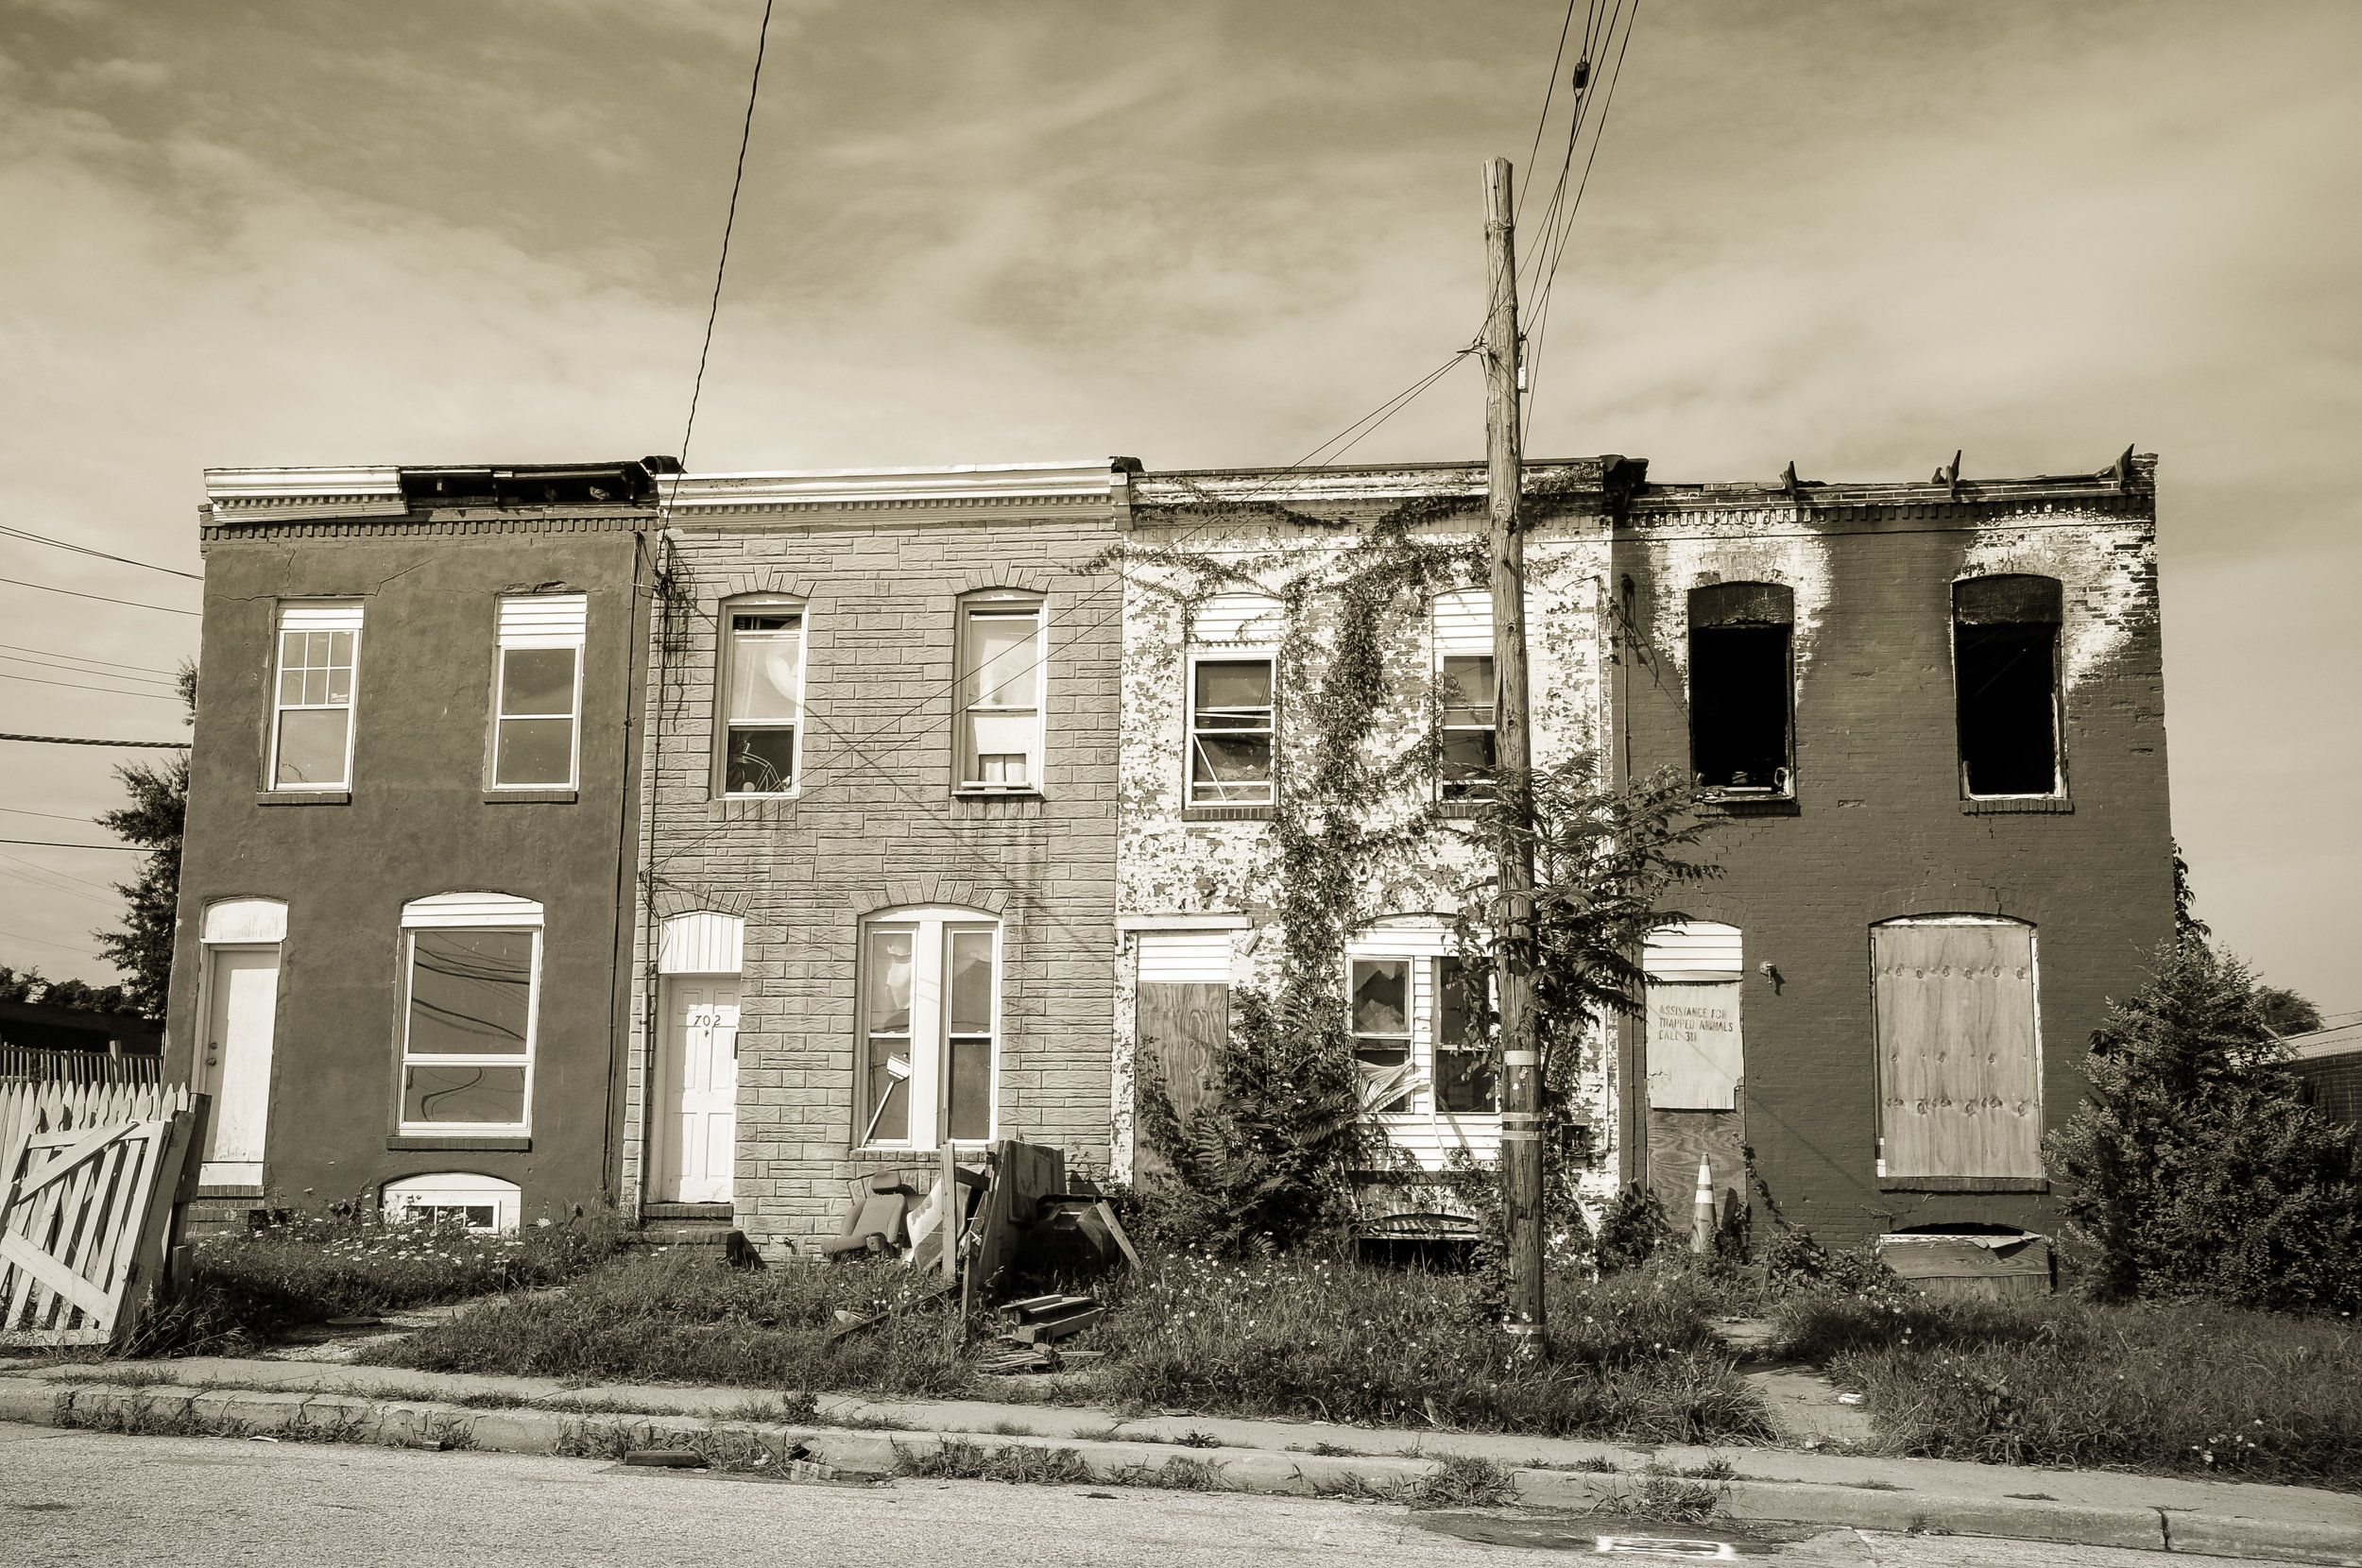 Baltimore Row Houses Photo: Rose Anderson, August 2018